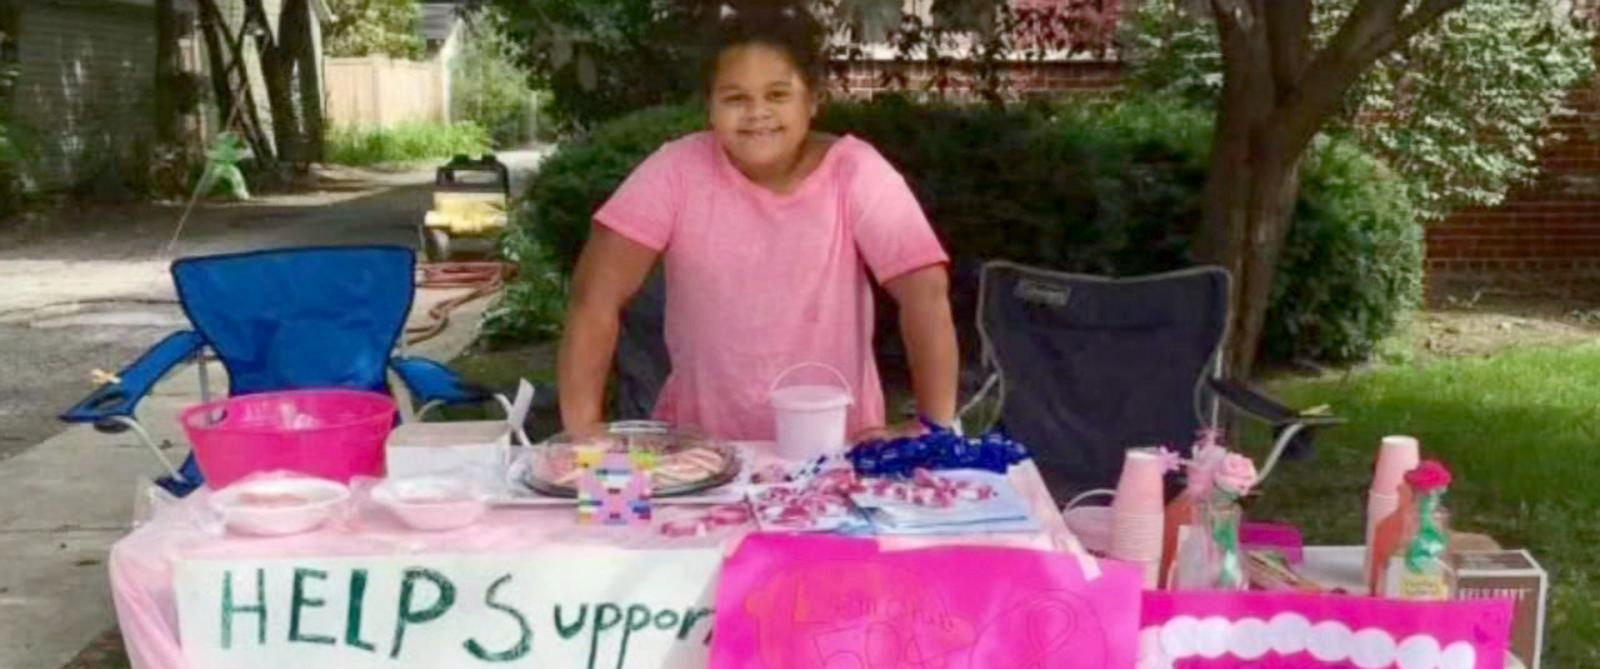 Olivia Ohlson, 10, began selling pink lemonade and pink ribbon cookies to donate to a local cancer center.